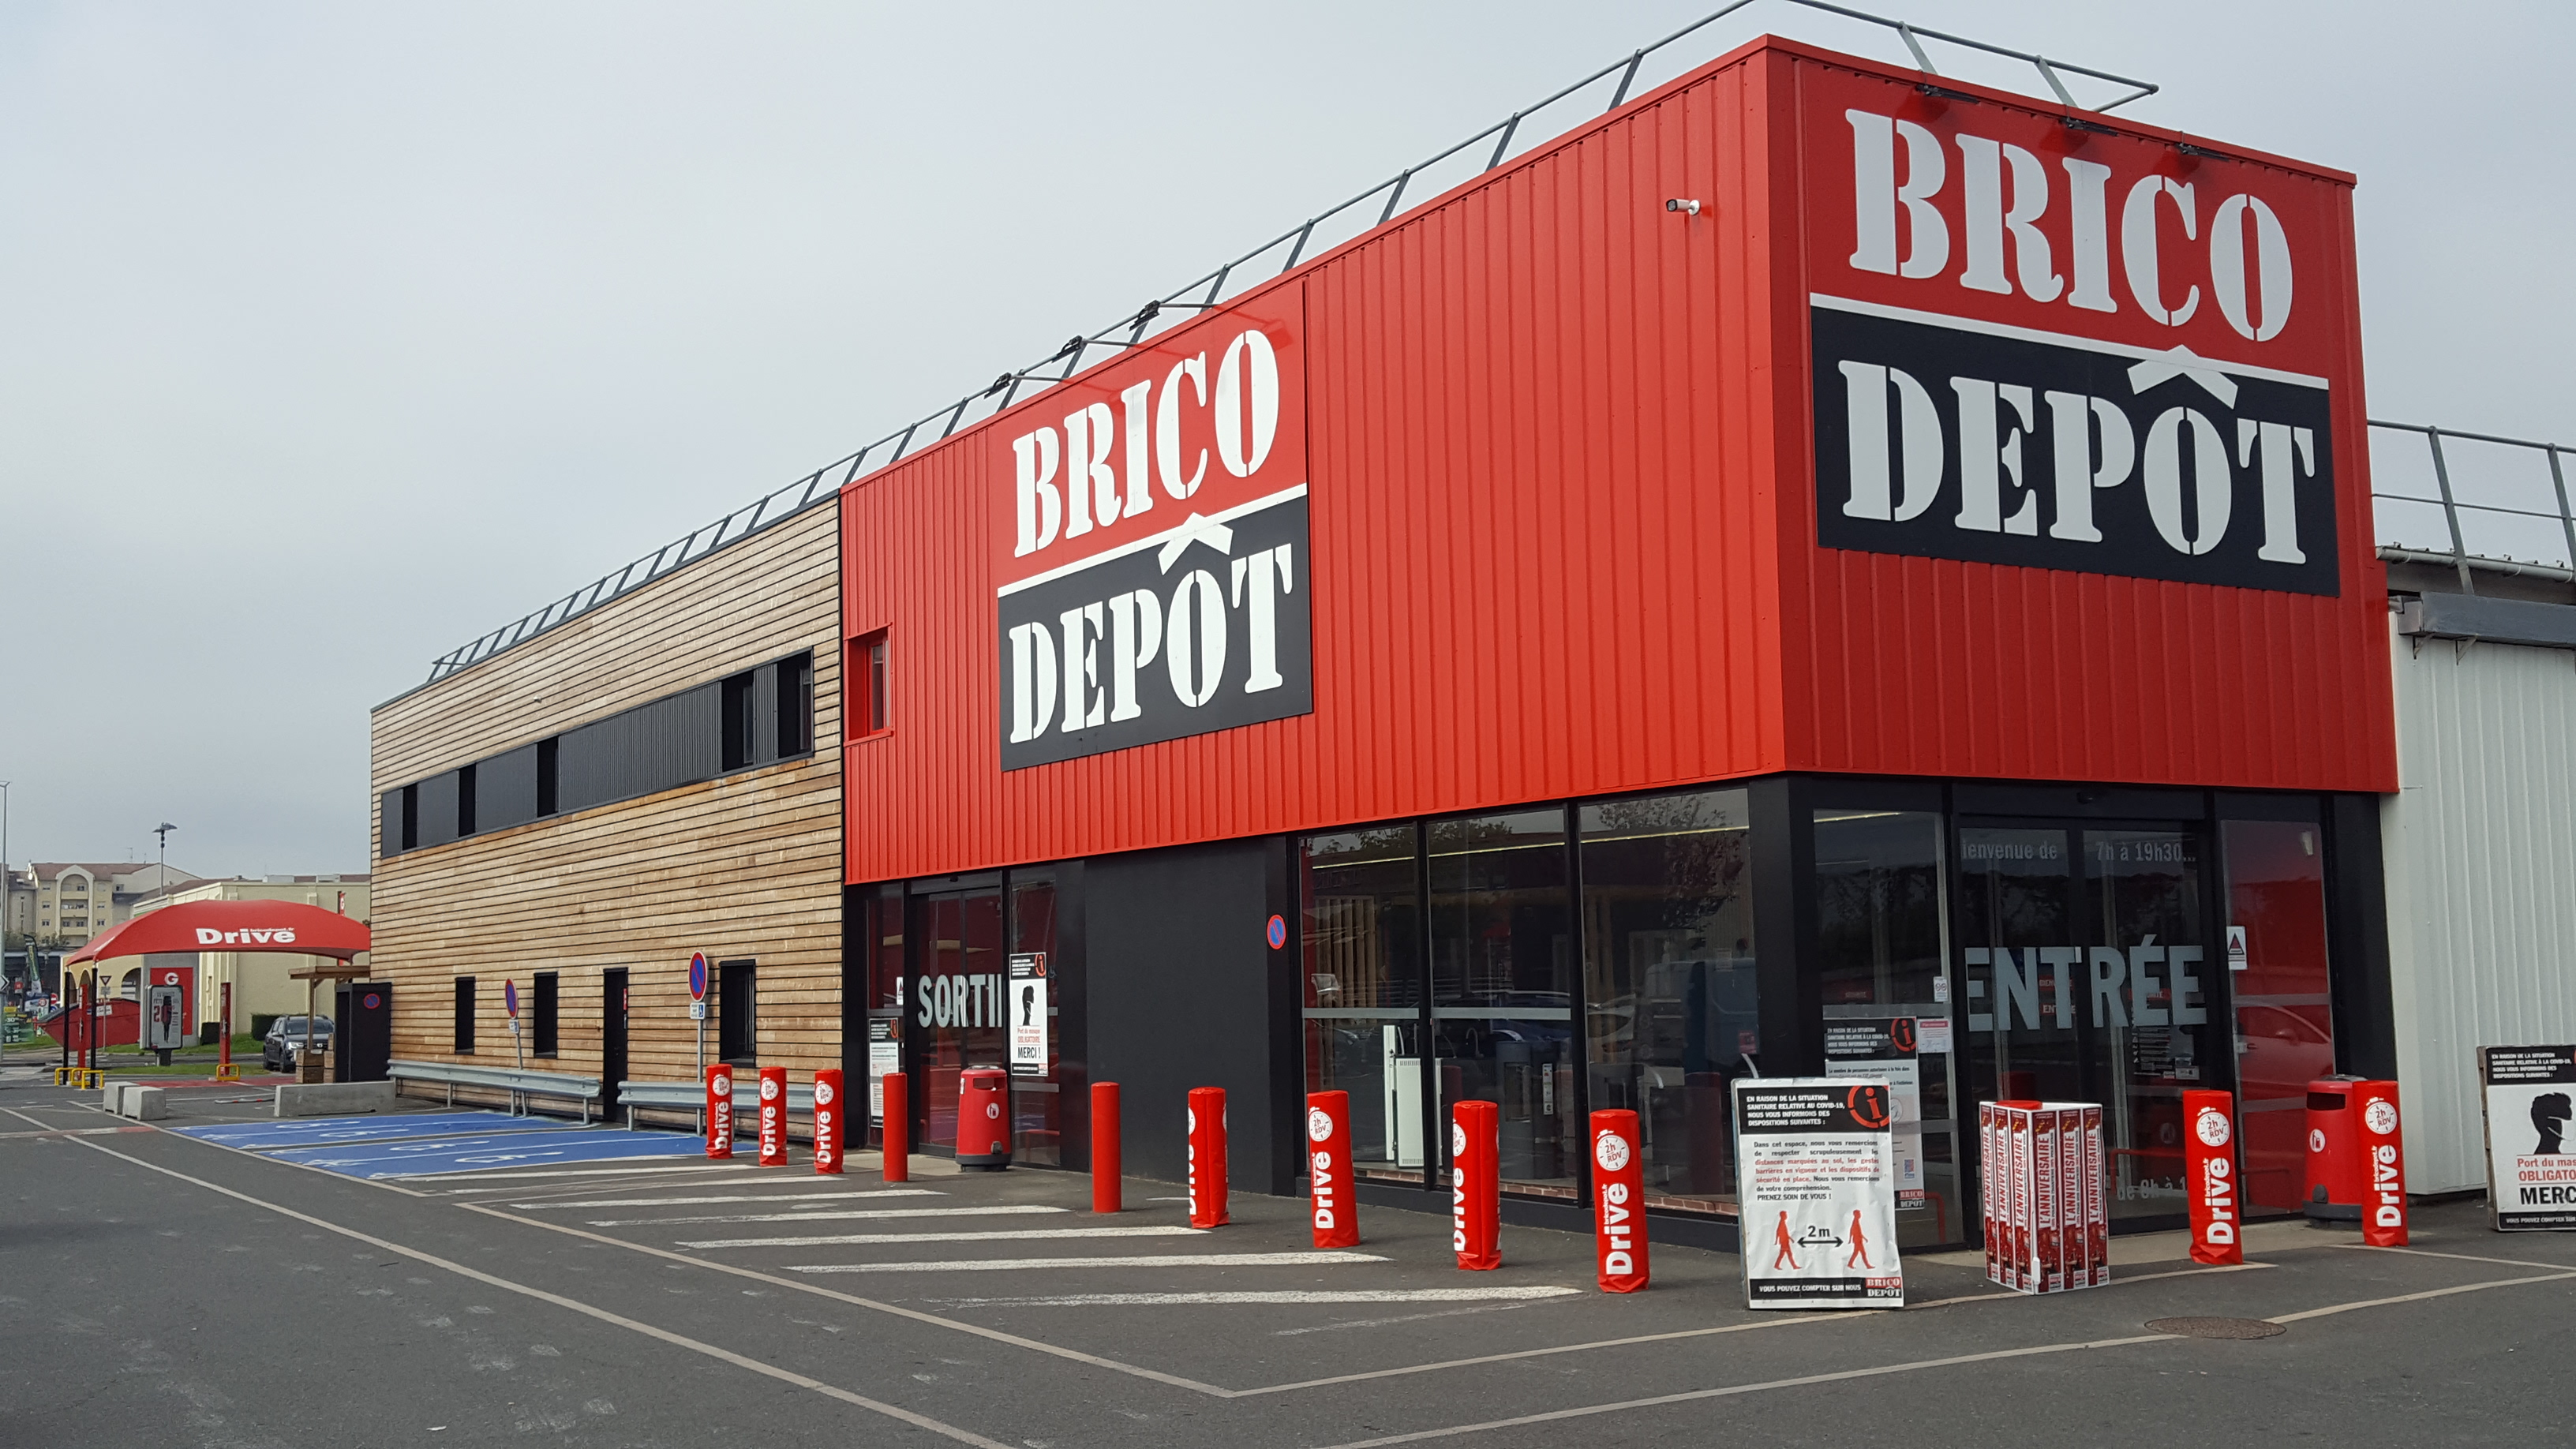 Magasin bricolage reims stunning beauxarts with magasin - Magasin ouvert reims dimanche ...